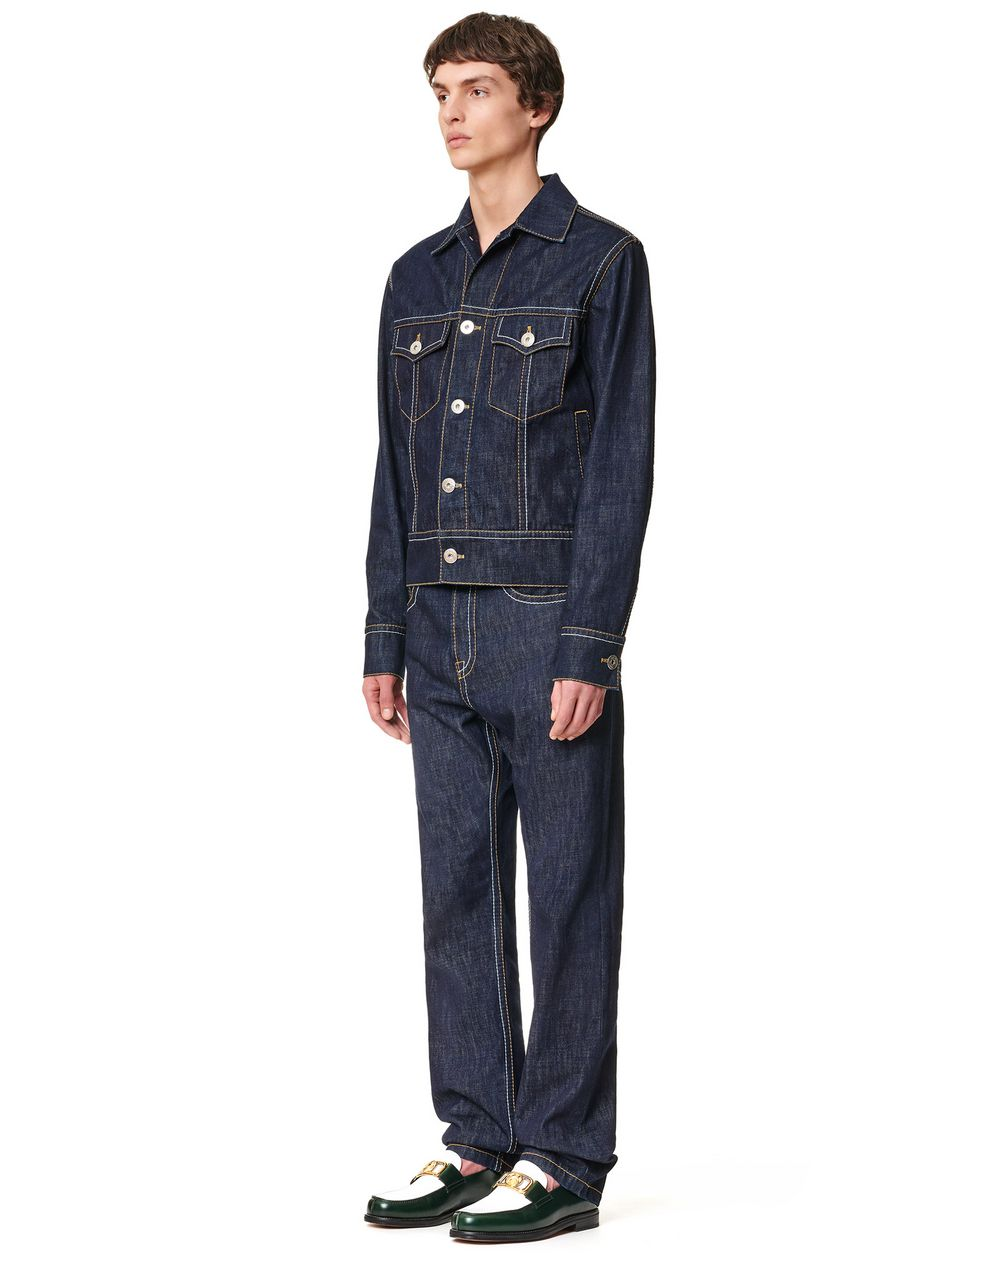 DENIM JACKET - Lanvin